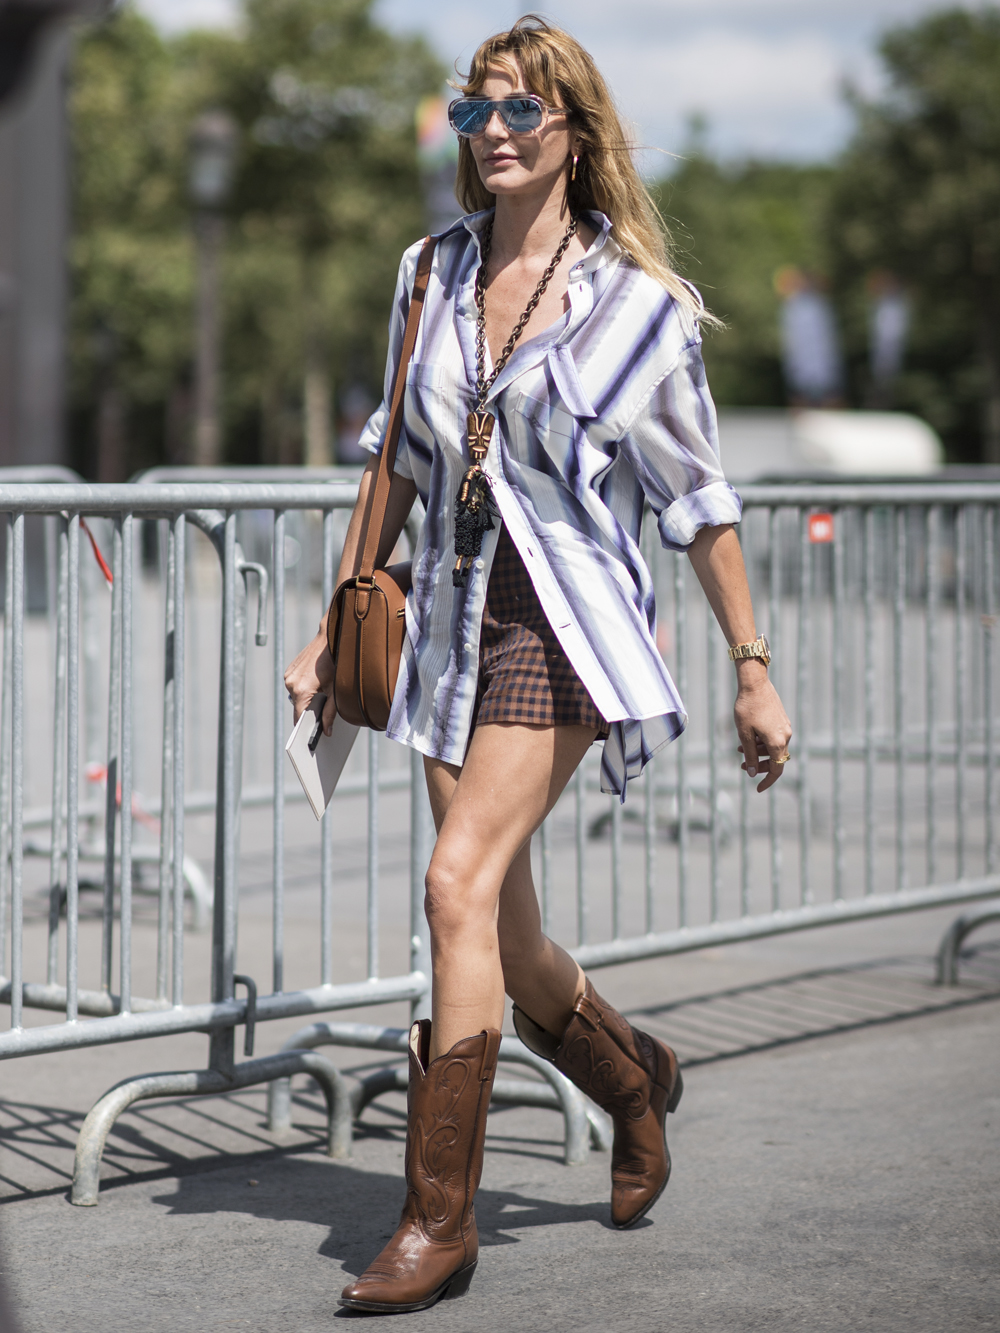 How to Wear Cowboy Boots in the summer